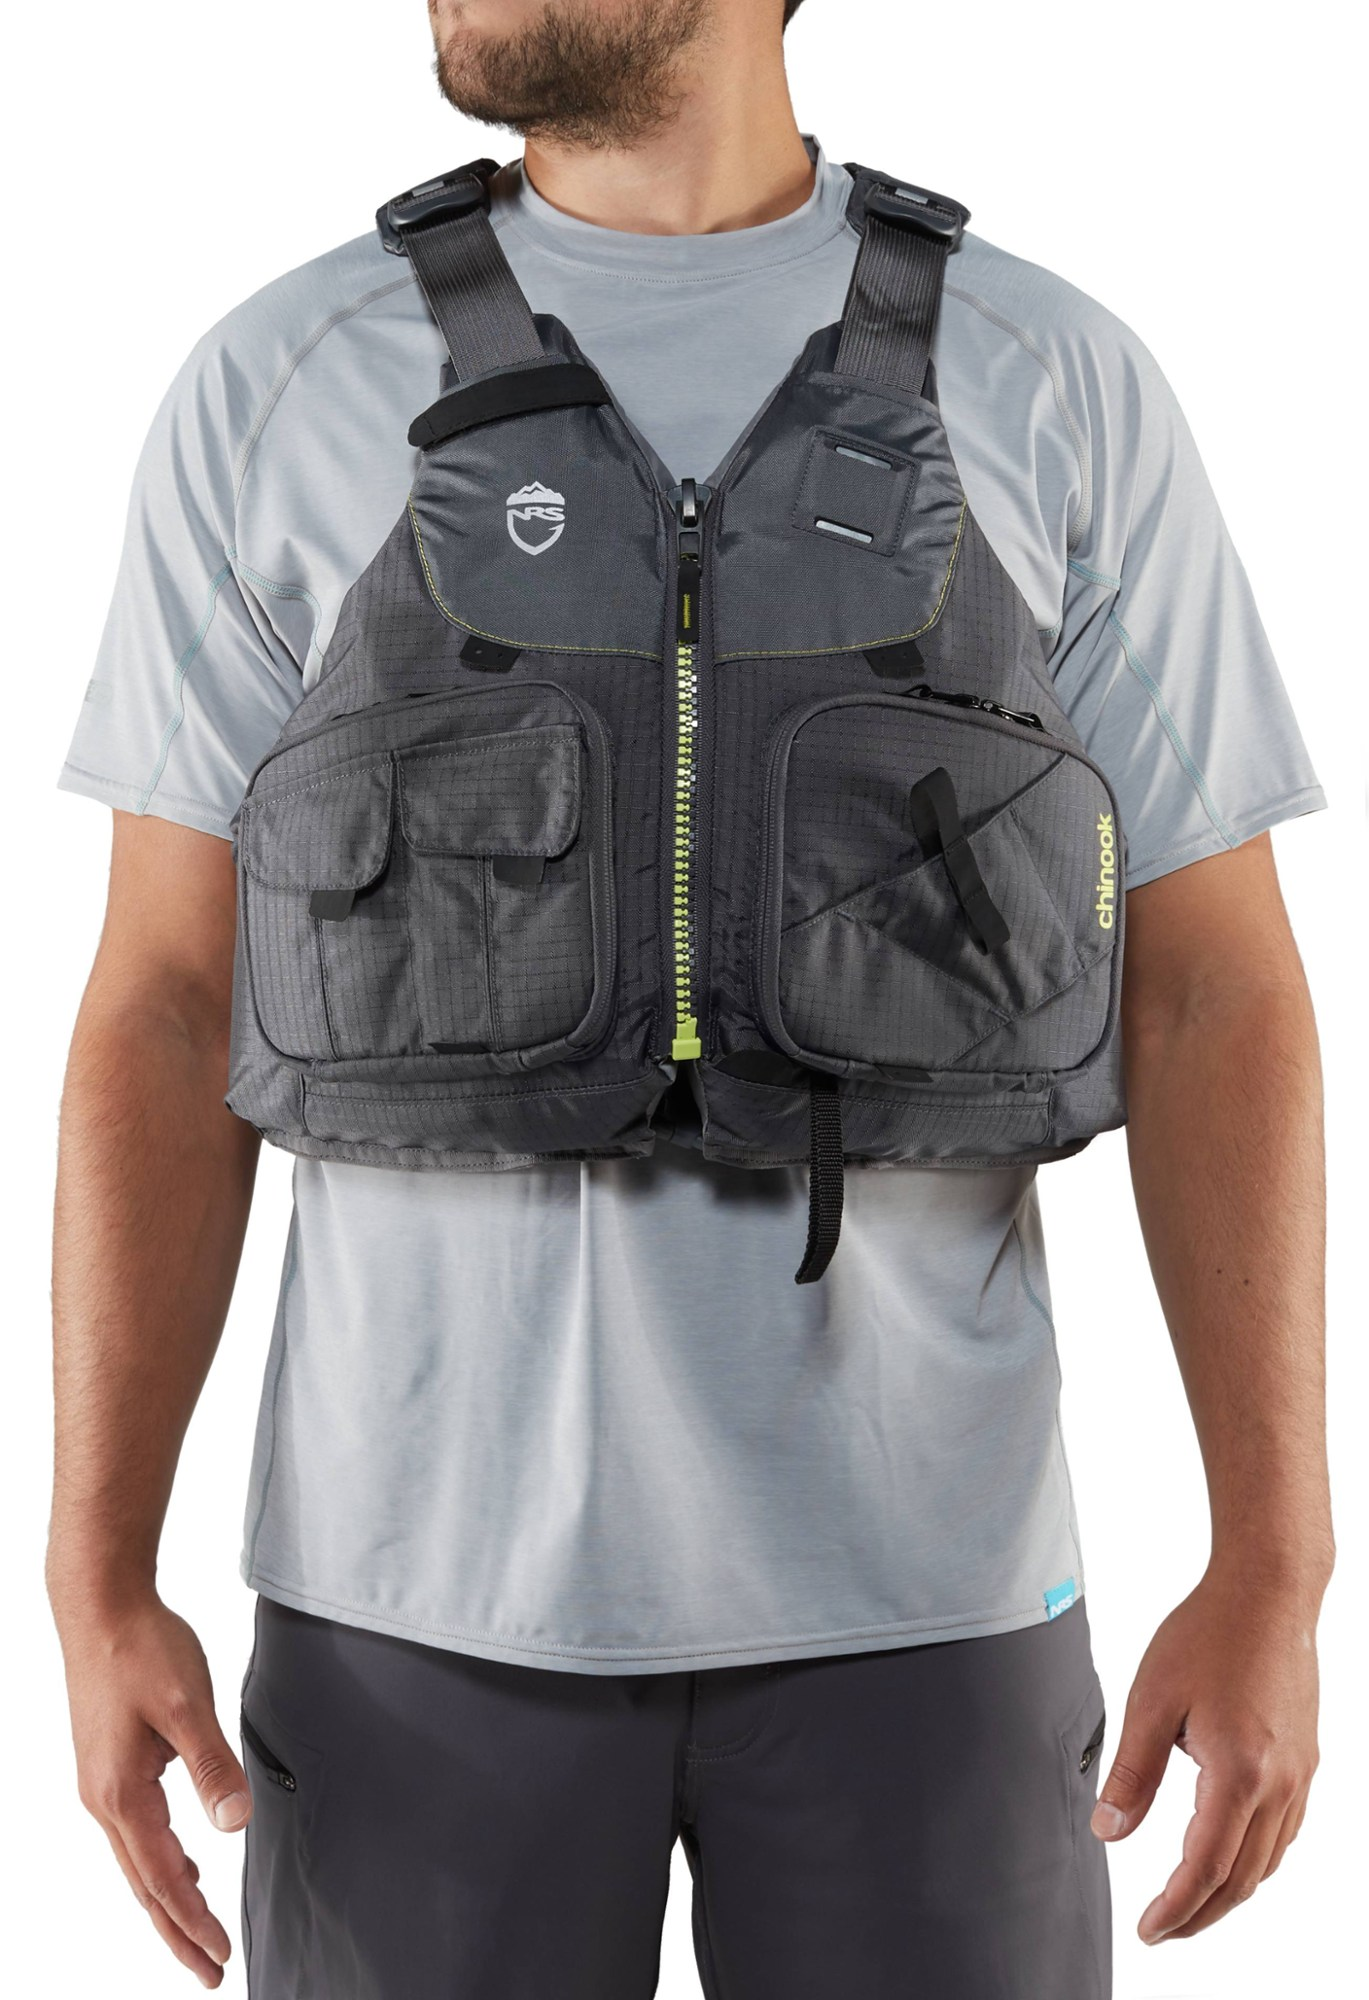 NRS Chinook PFD - Charcoal